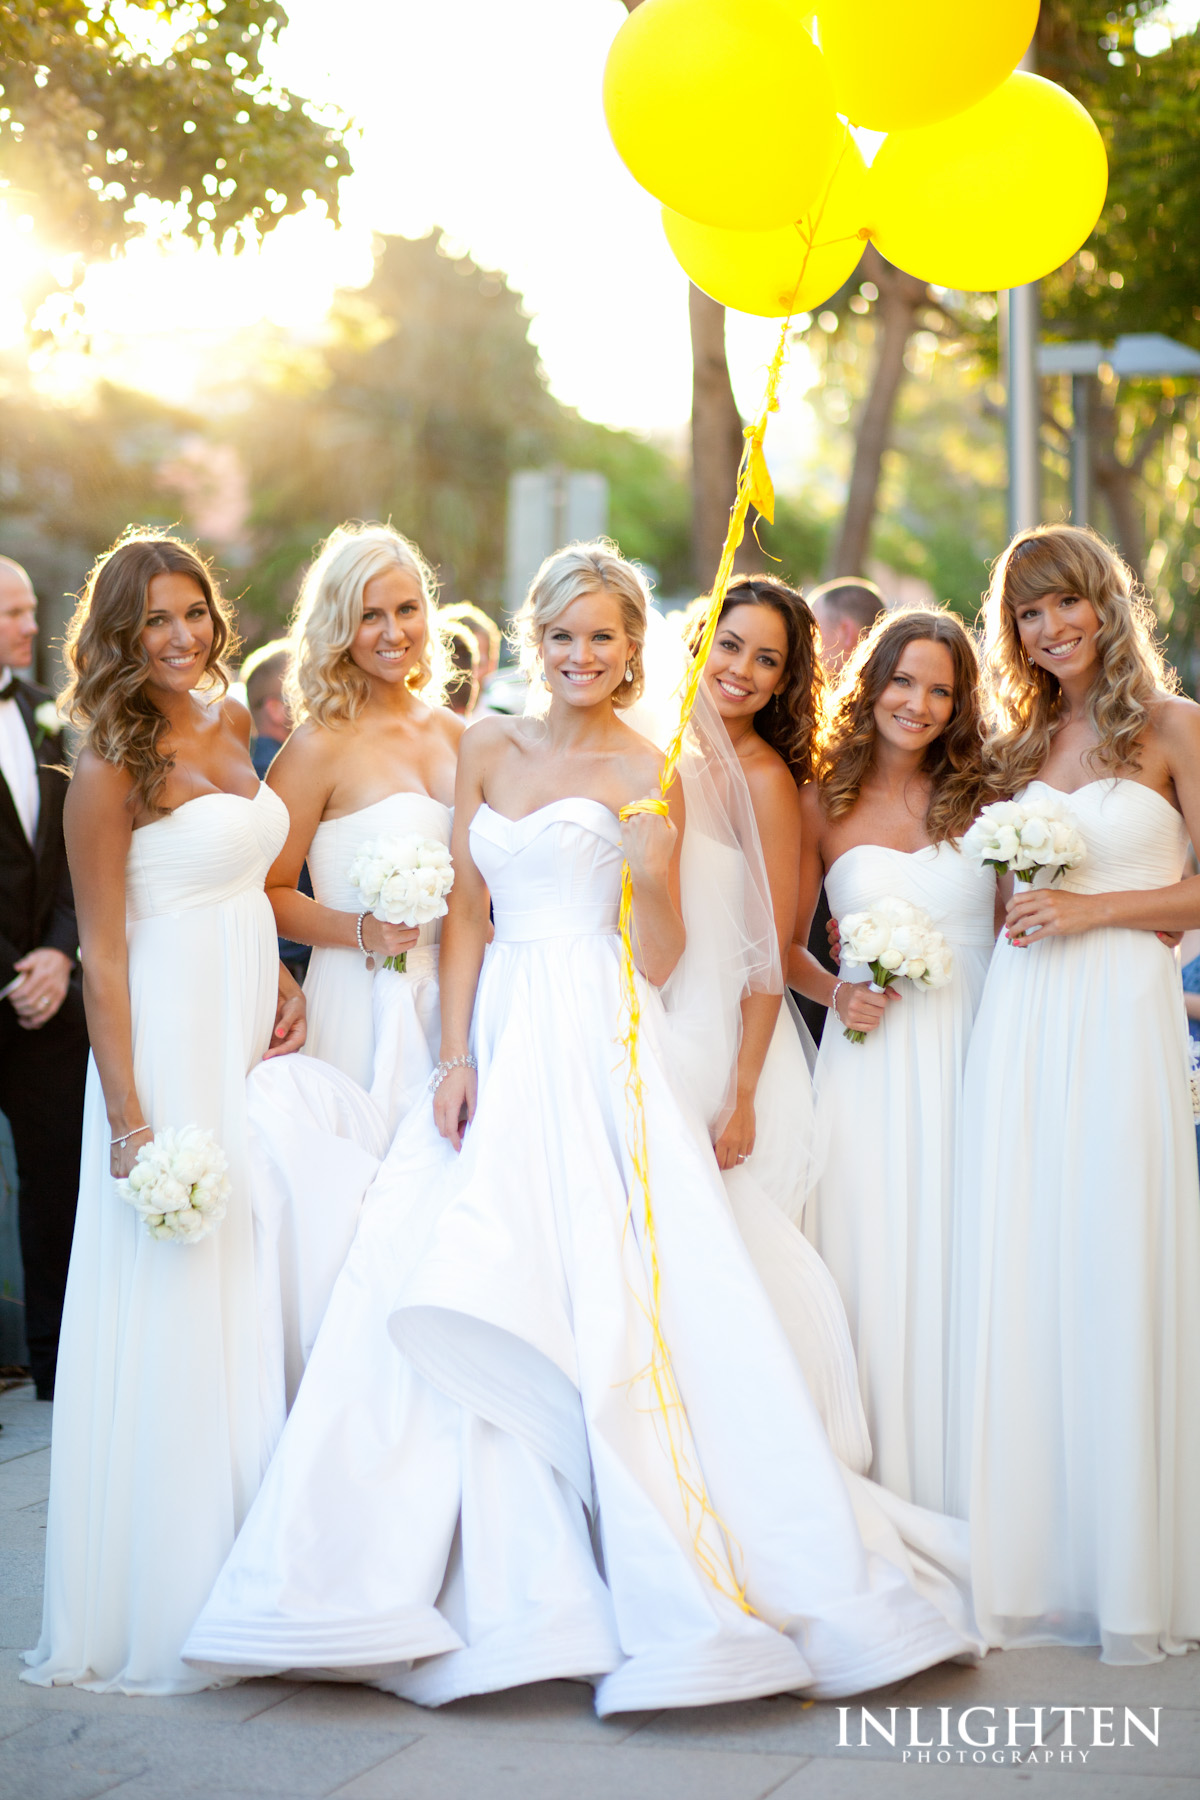 Sophie with her bridesmaids